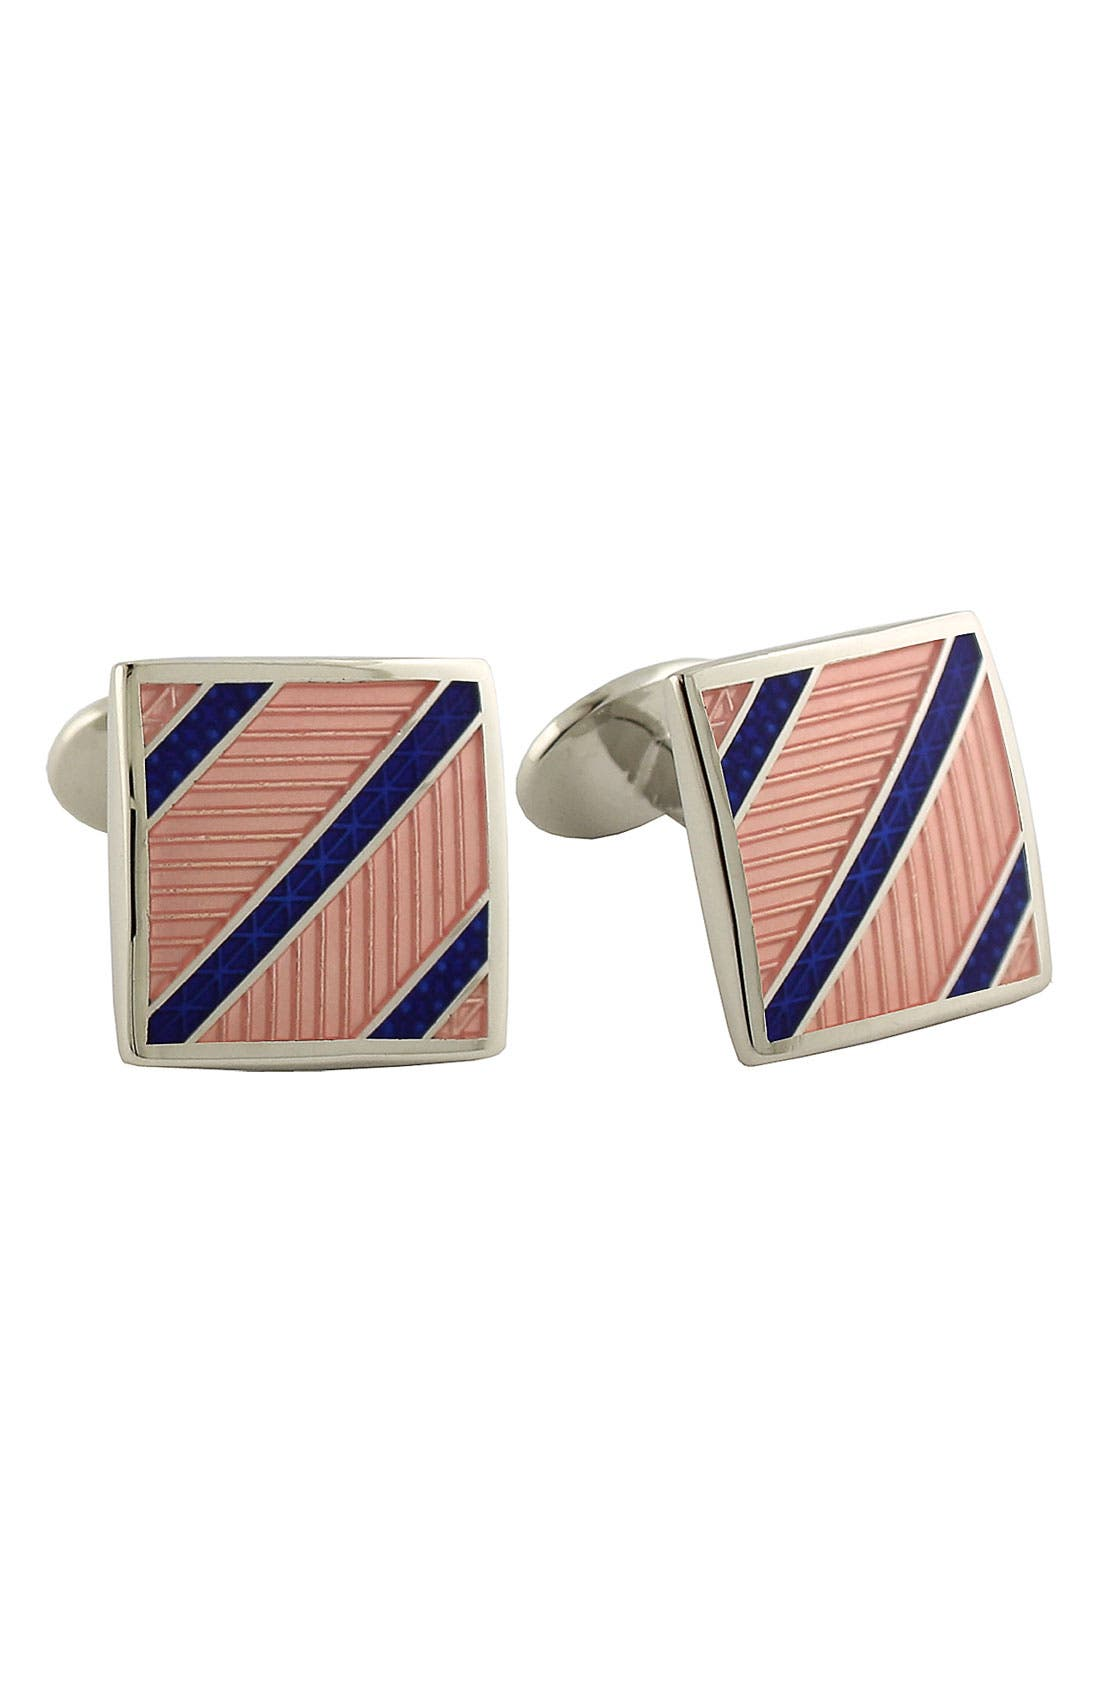 Main Image - David Donahue 'Diagonal Stripe' Cuff Links